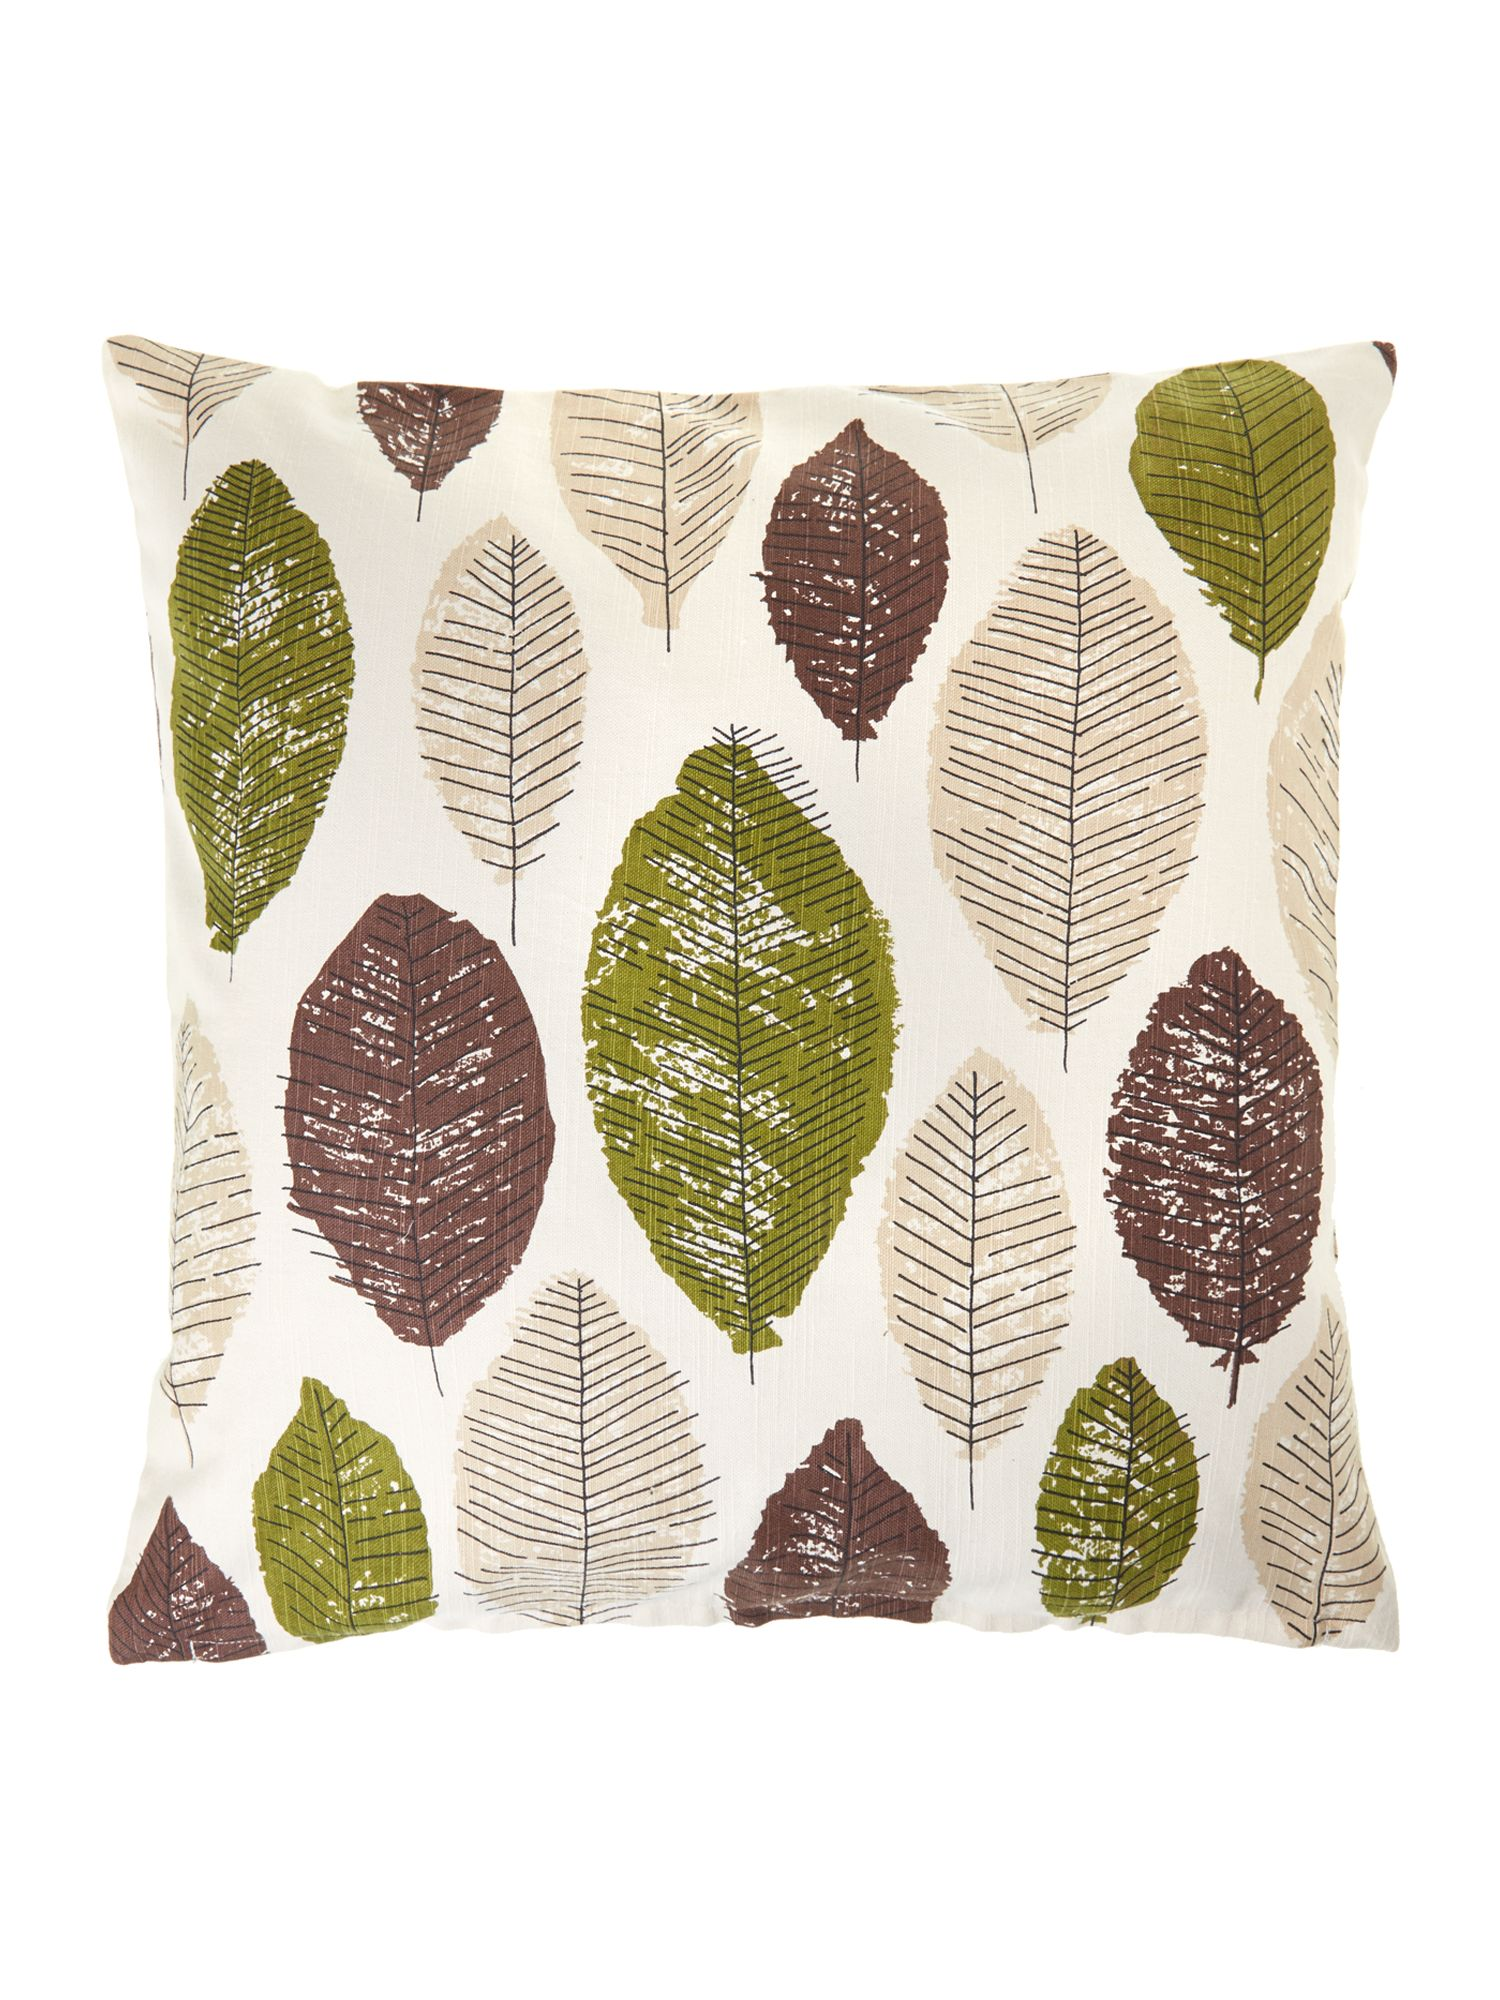 Leaf design cotton cushion, green